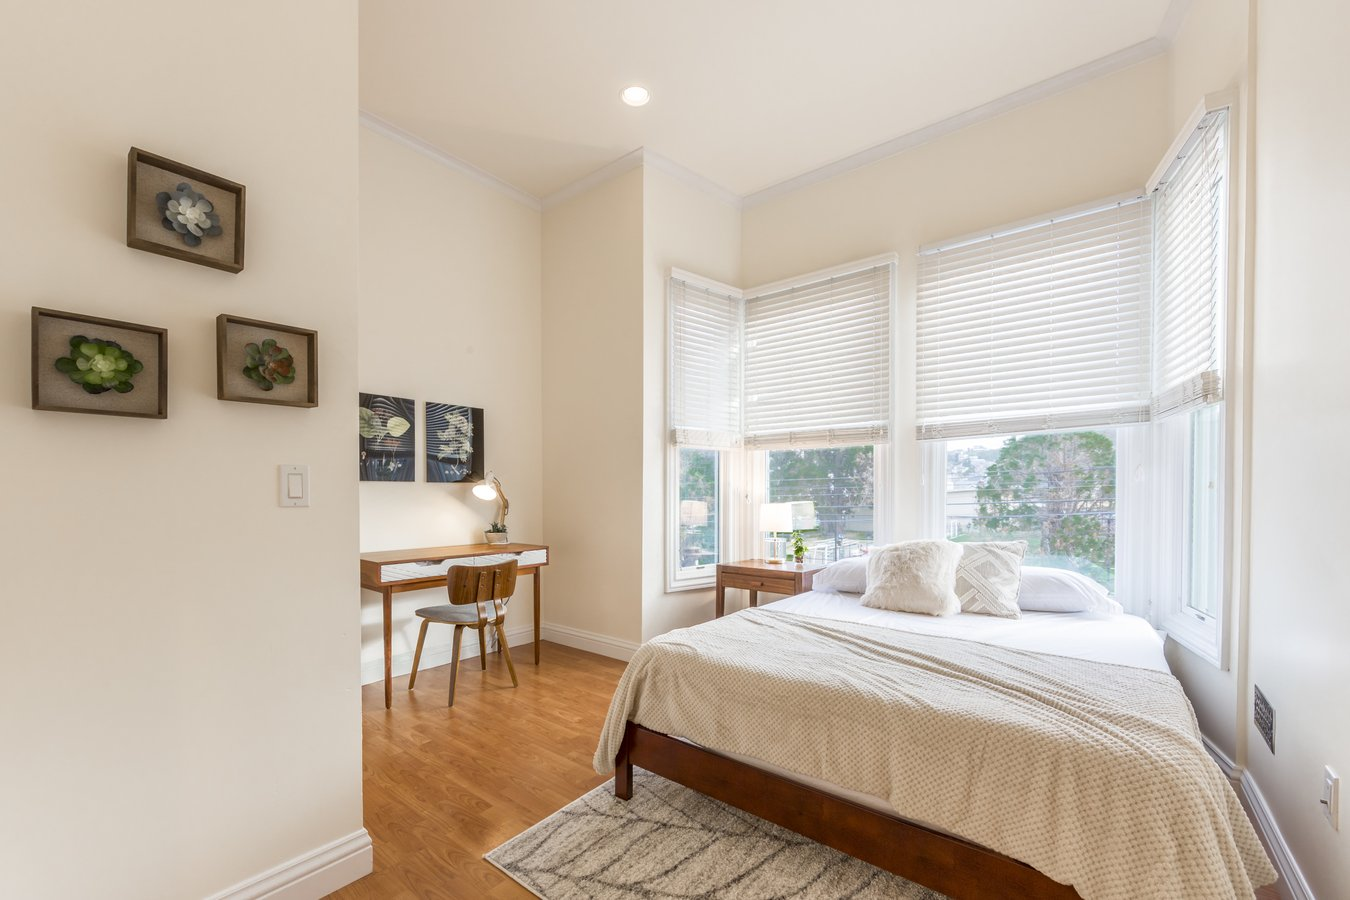 1 Bedroom 1 Bathroom House for rent at 25Th St & Balmy St Coliving in San Francisco, CA